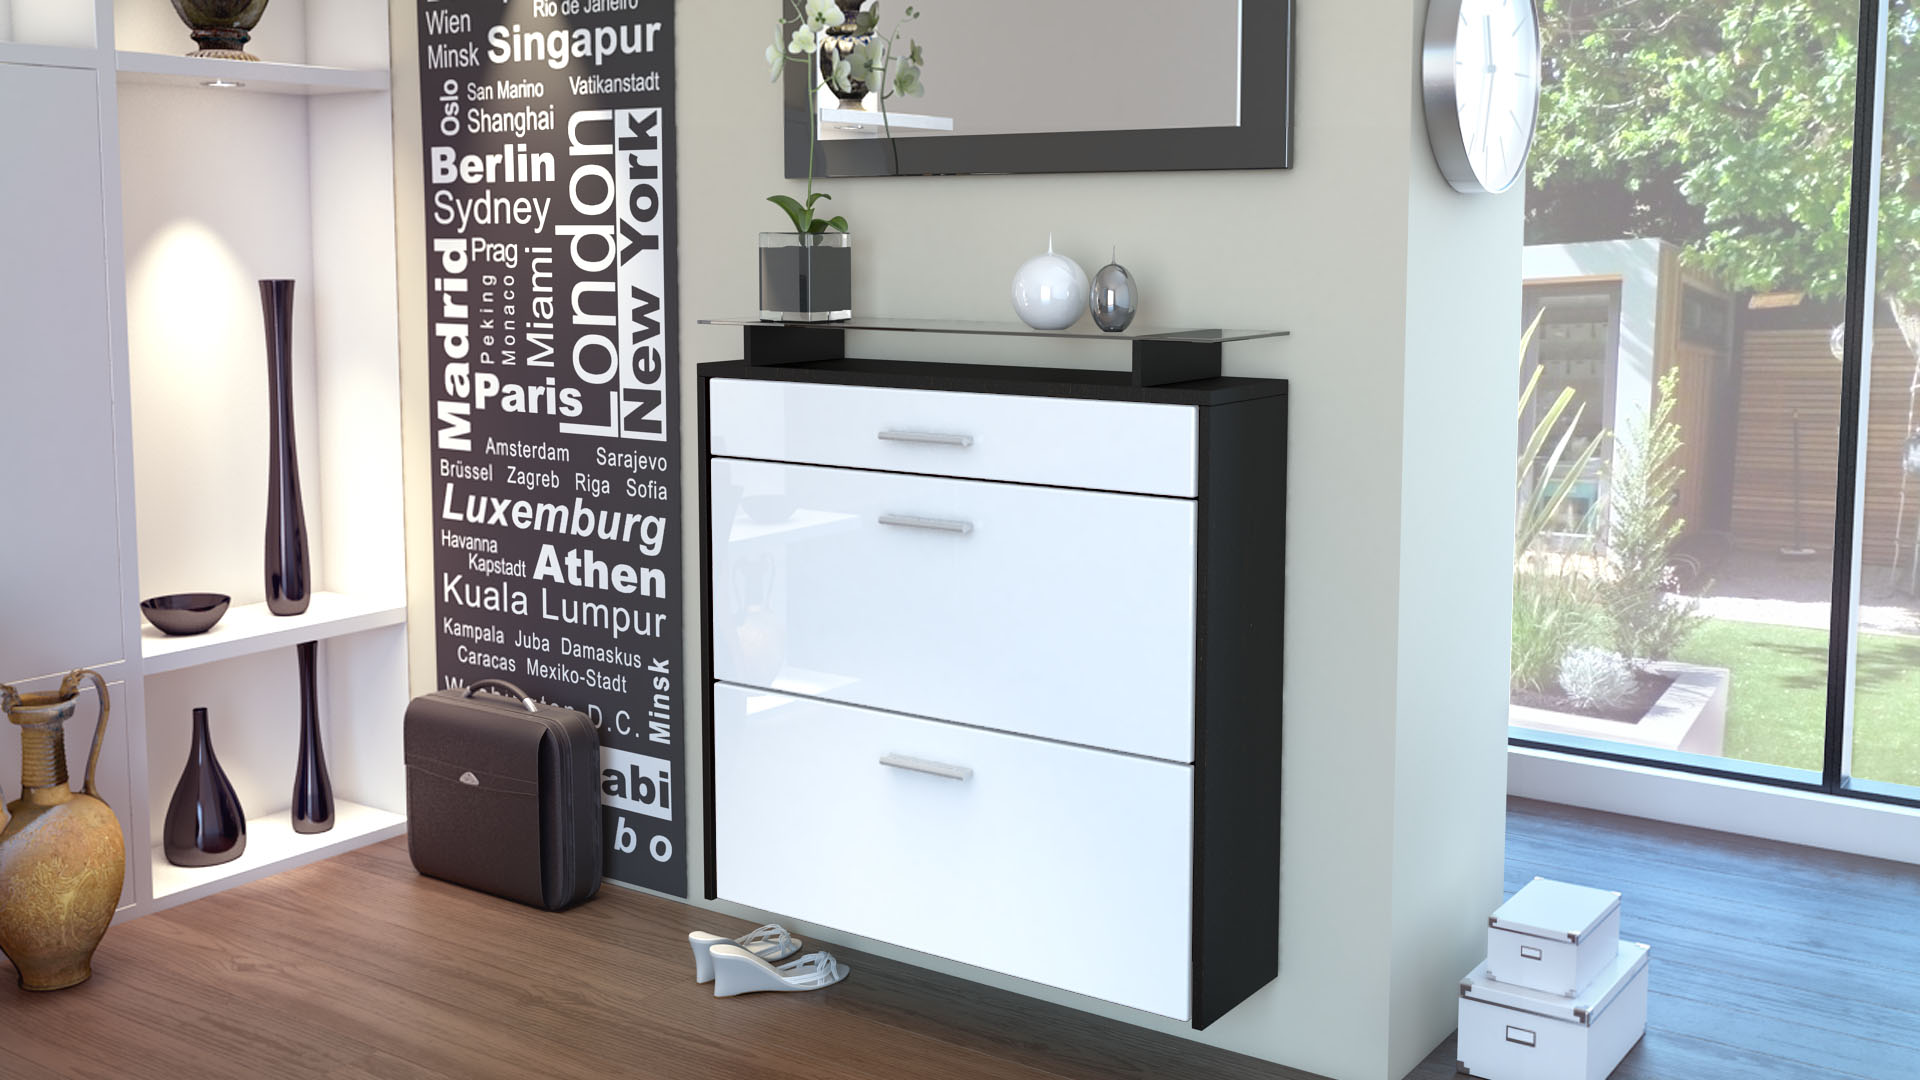 schuhschrank schuhkipper h nge schuhschrank malea schwarz hochglanz naturt ne ebay. Black Bedroom Furniture Sets. Home Design Ideas